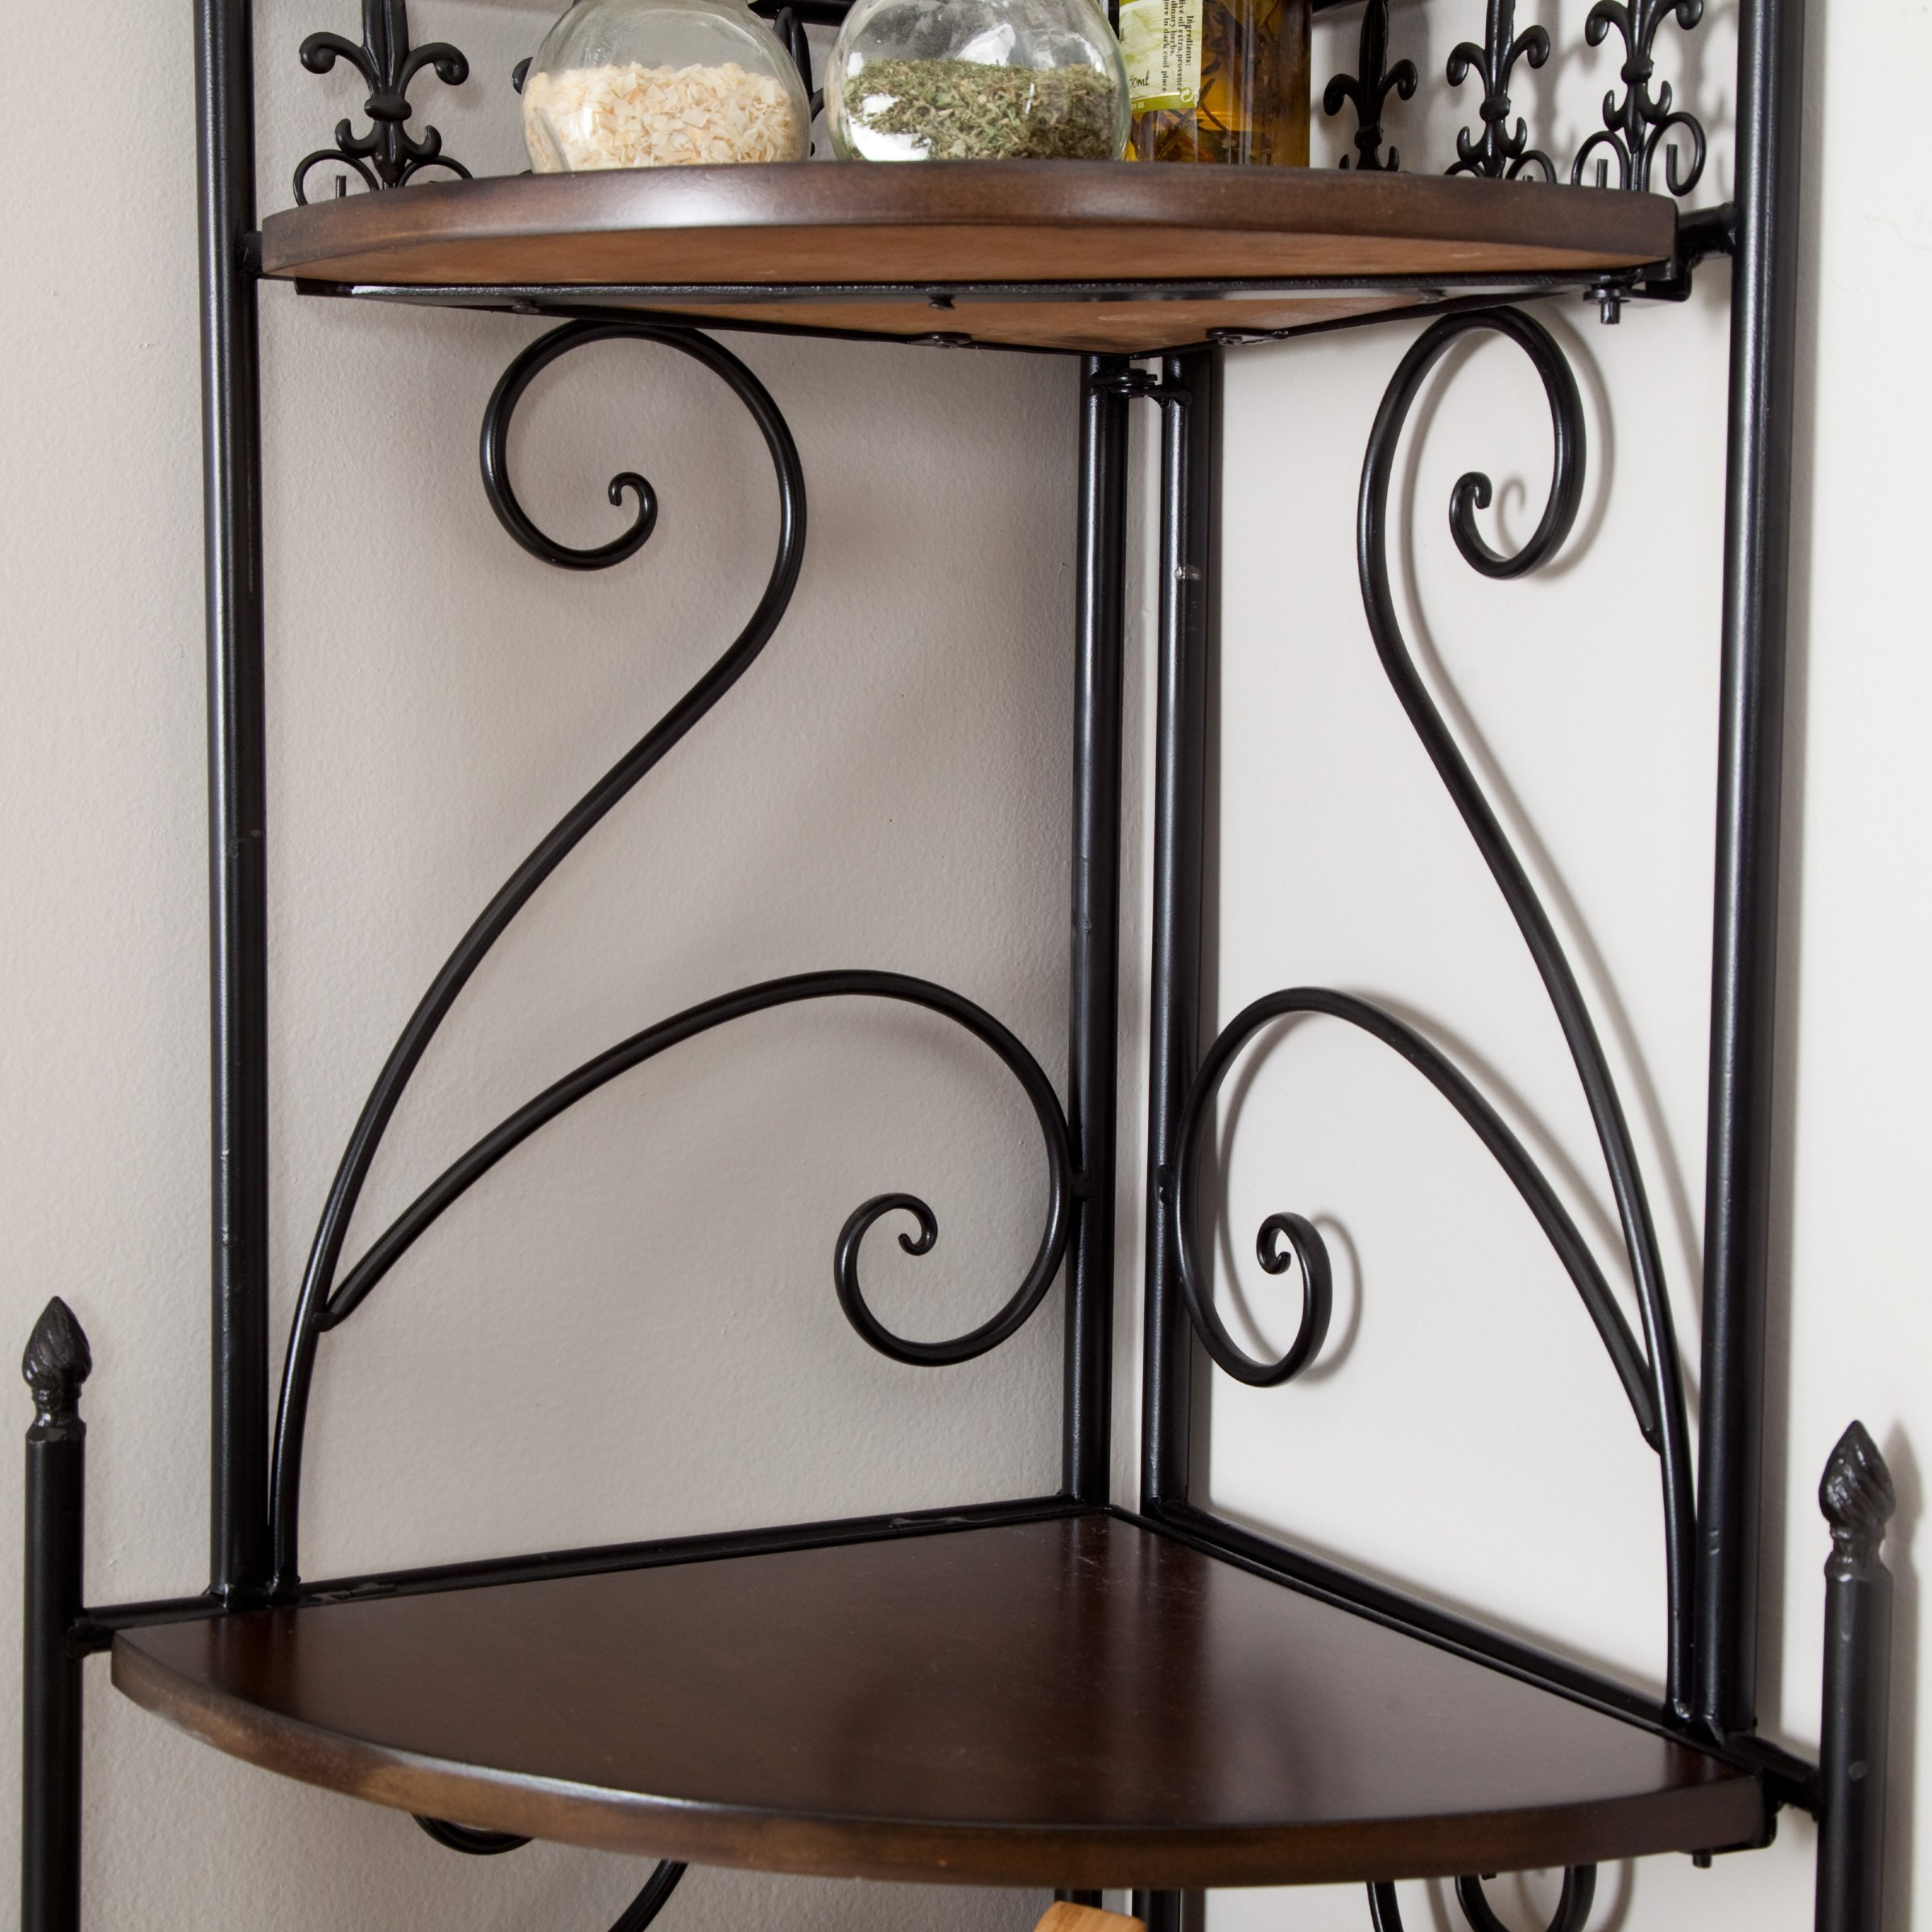 Belham Living Portica Wrought Iron and Wood Corner Bakers Rack by Belham (Image #4)